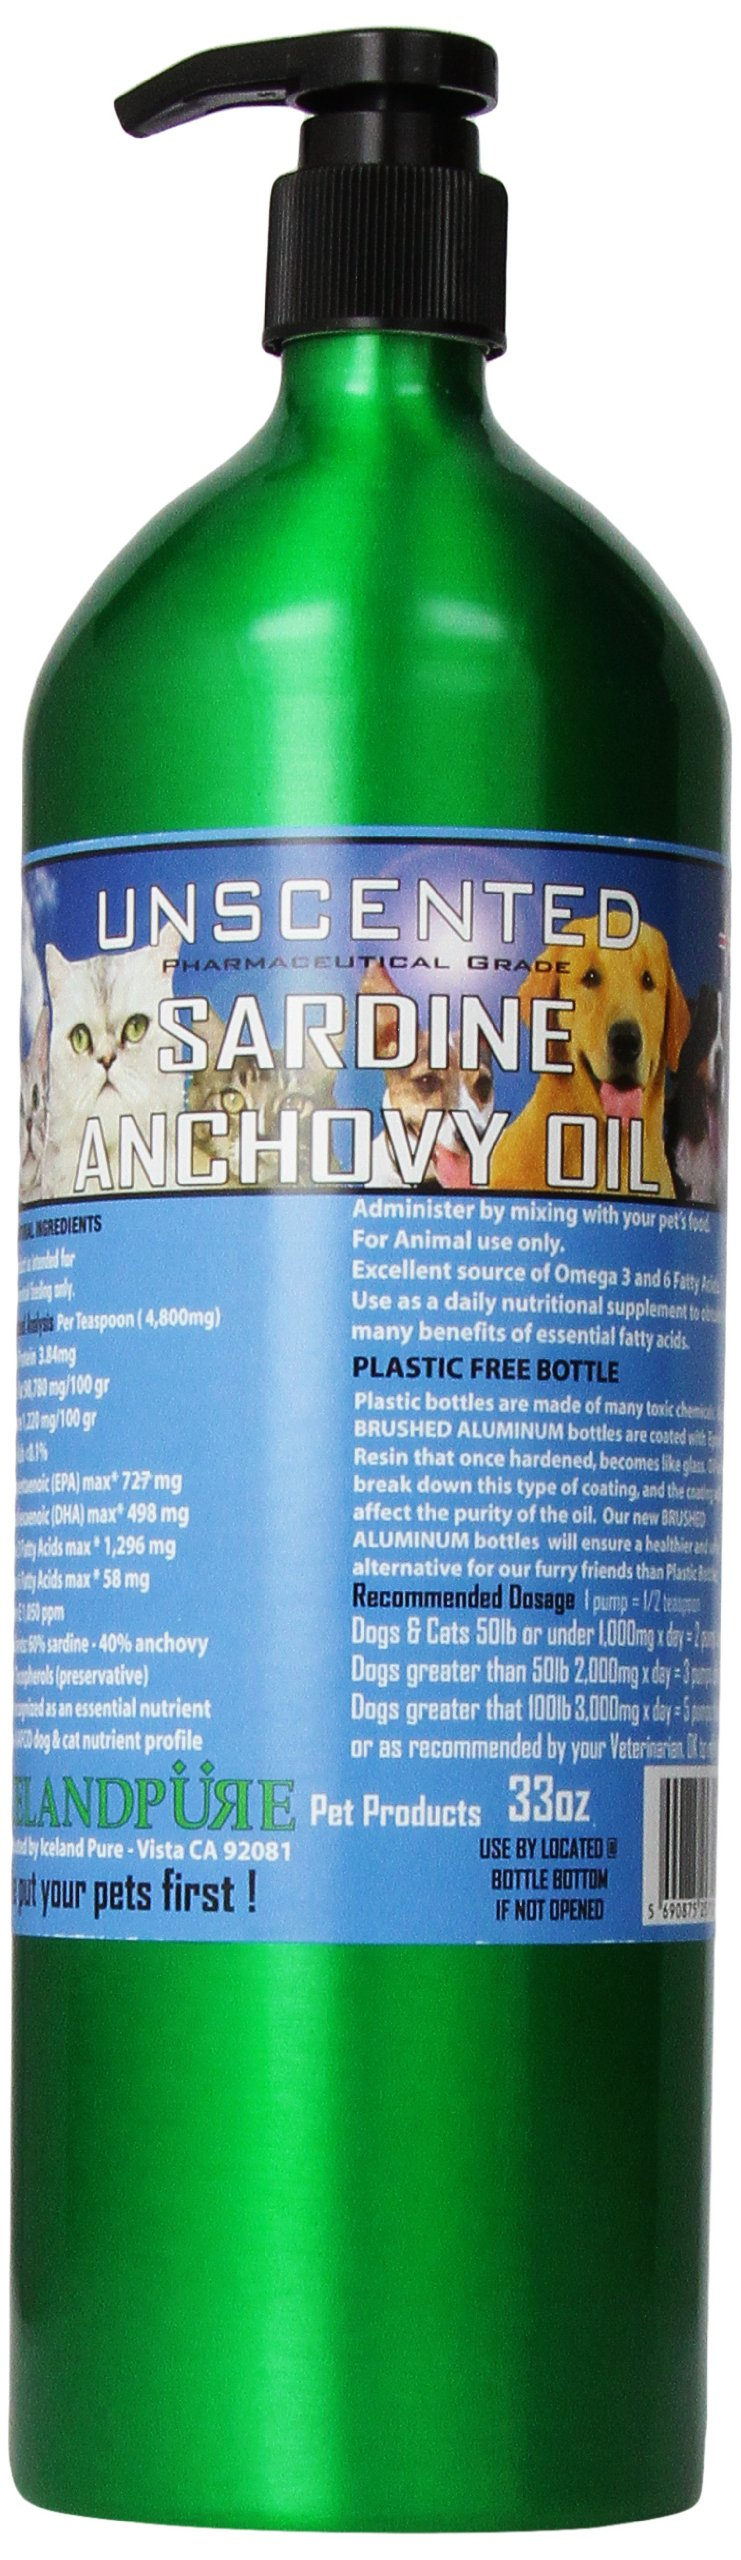 Iceland Pure Unscented Pharmaceutical Grade Sardine Anchovy Oil For Dogs And Cats.Bottle Size 33Oz by Iceland Pure